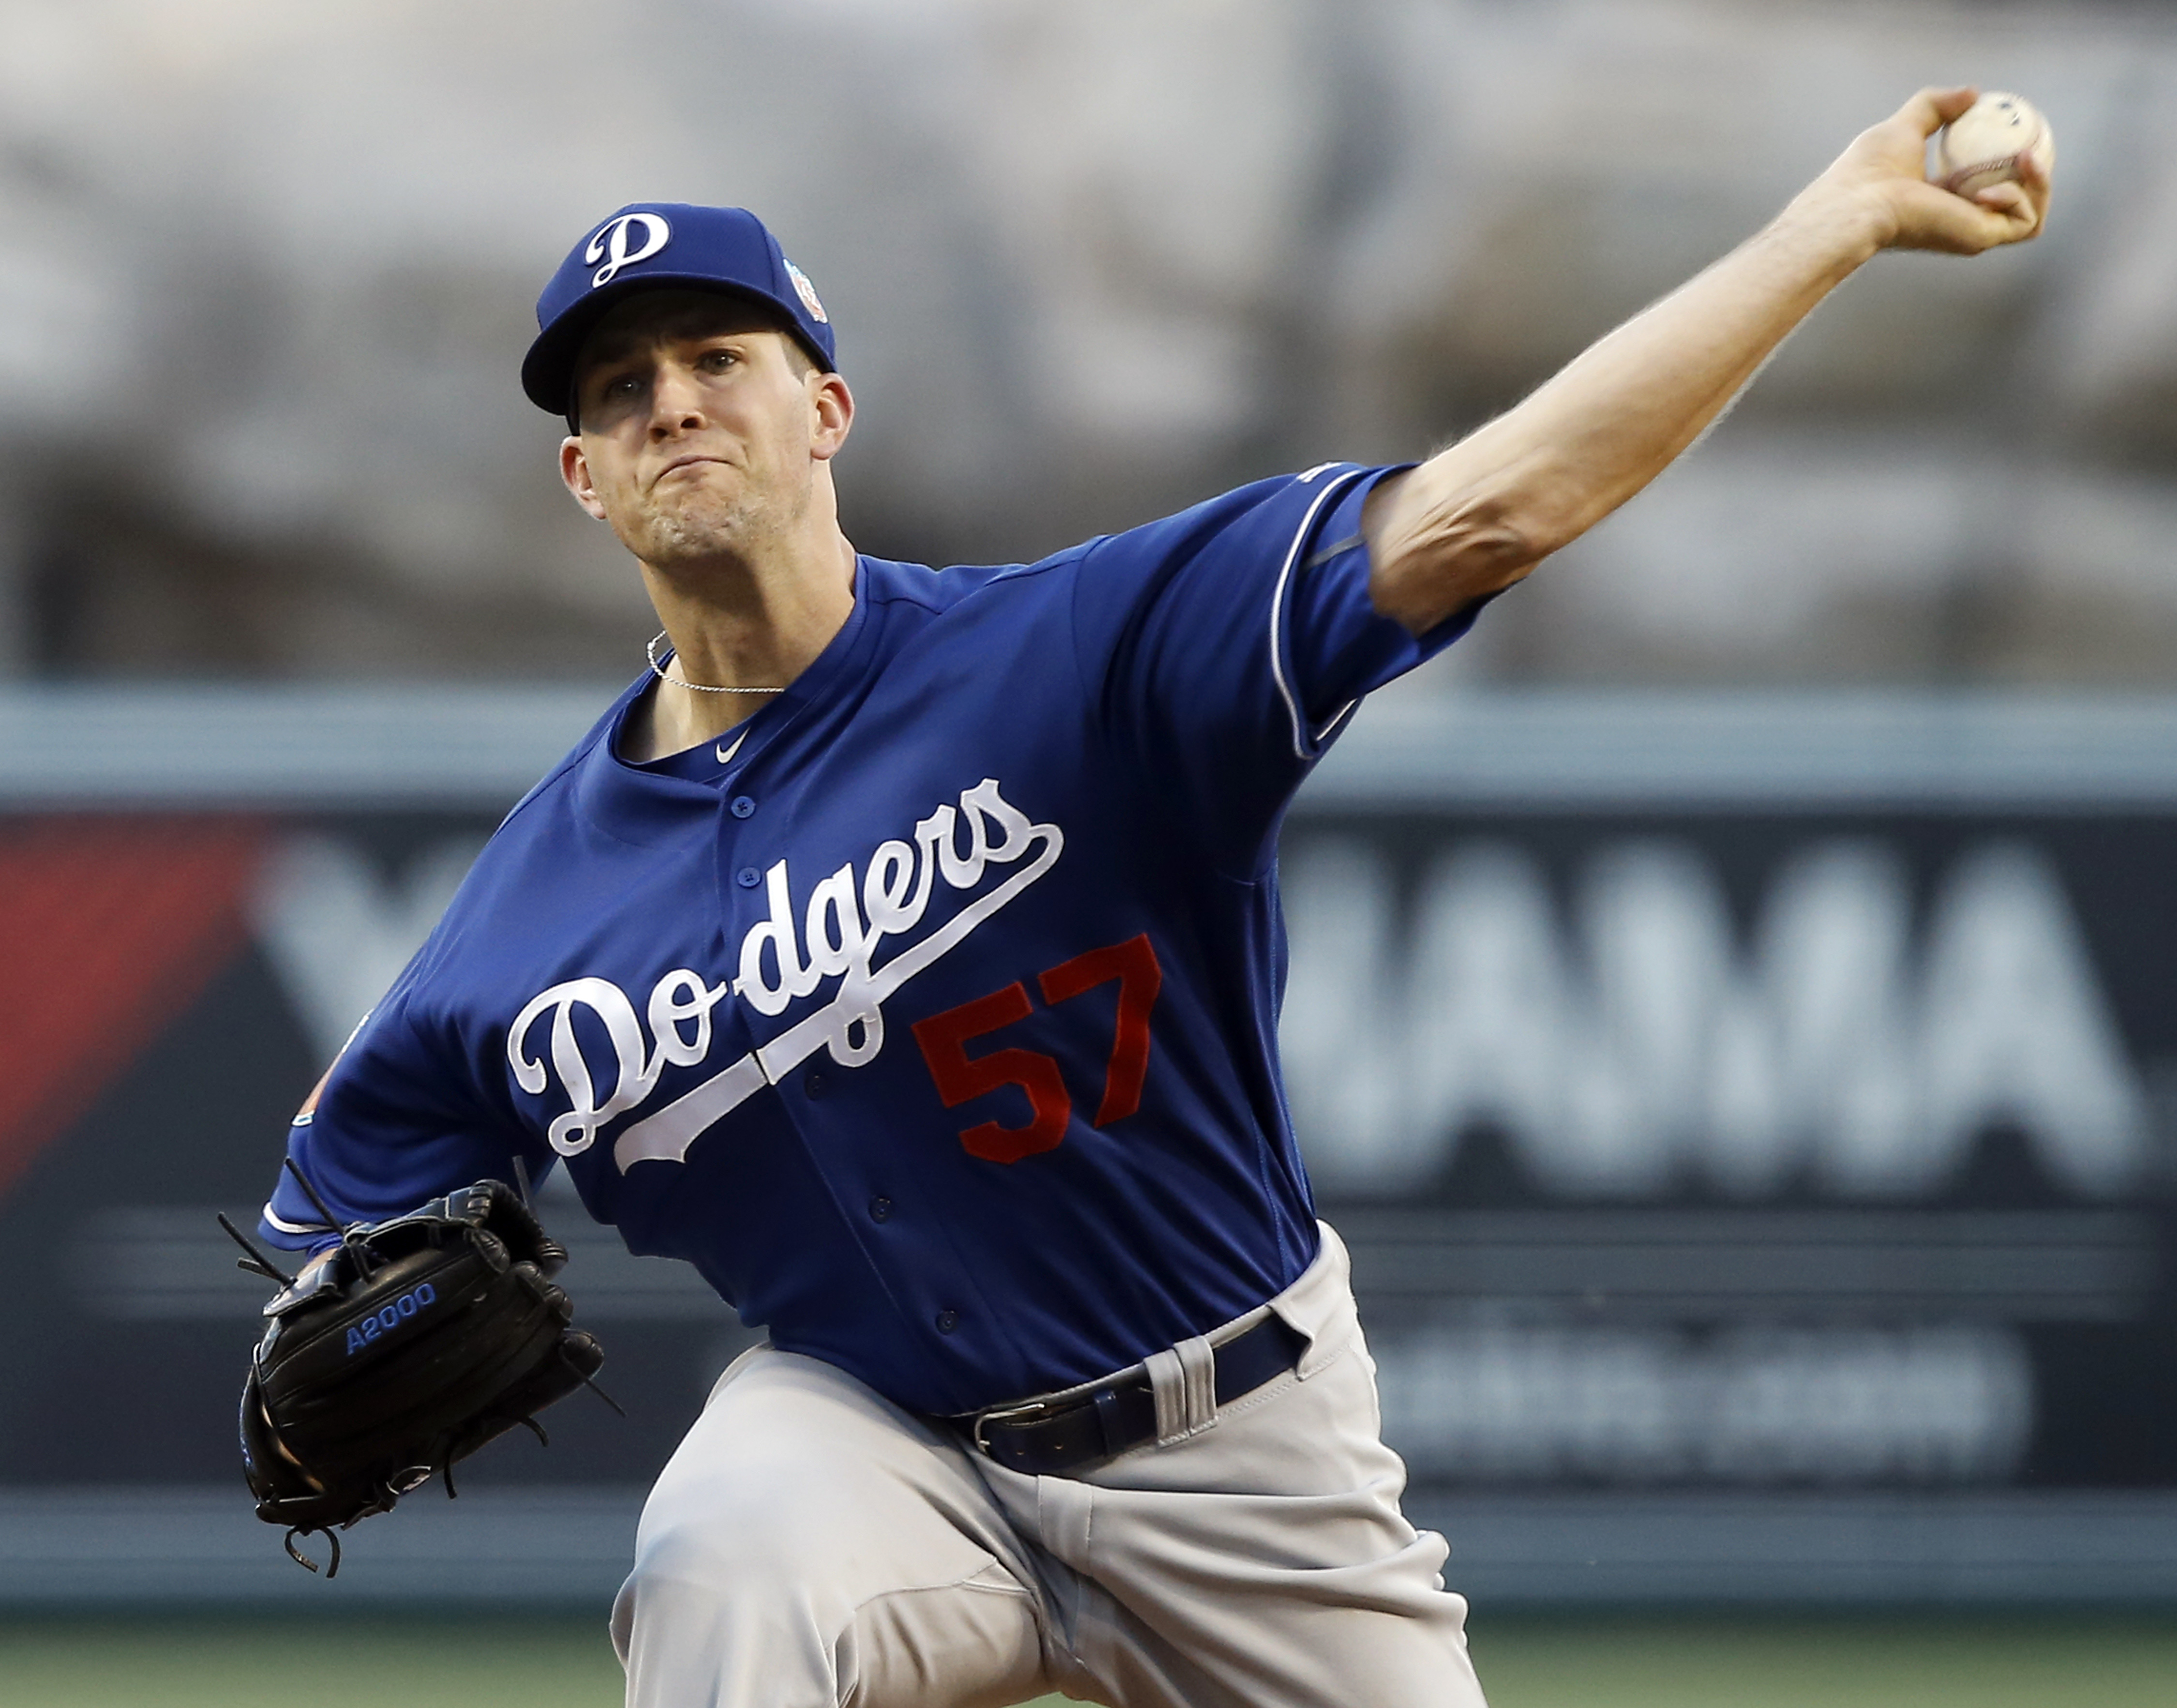 Los Angeles Dodgers starting pitcher Alex Wood throws against the Los Angeles Angels during the first inning of an exhibition baseball game in Anaheim, Calif., Saturday, April 2, 2016. (AP Photo/Alex Gallardo)